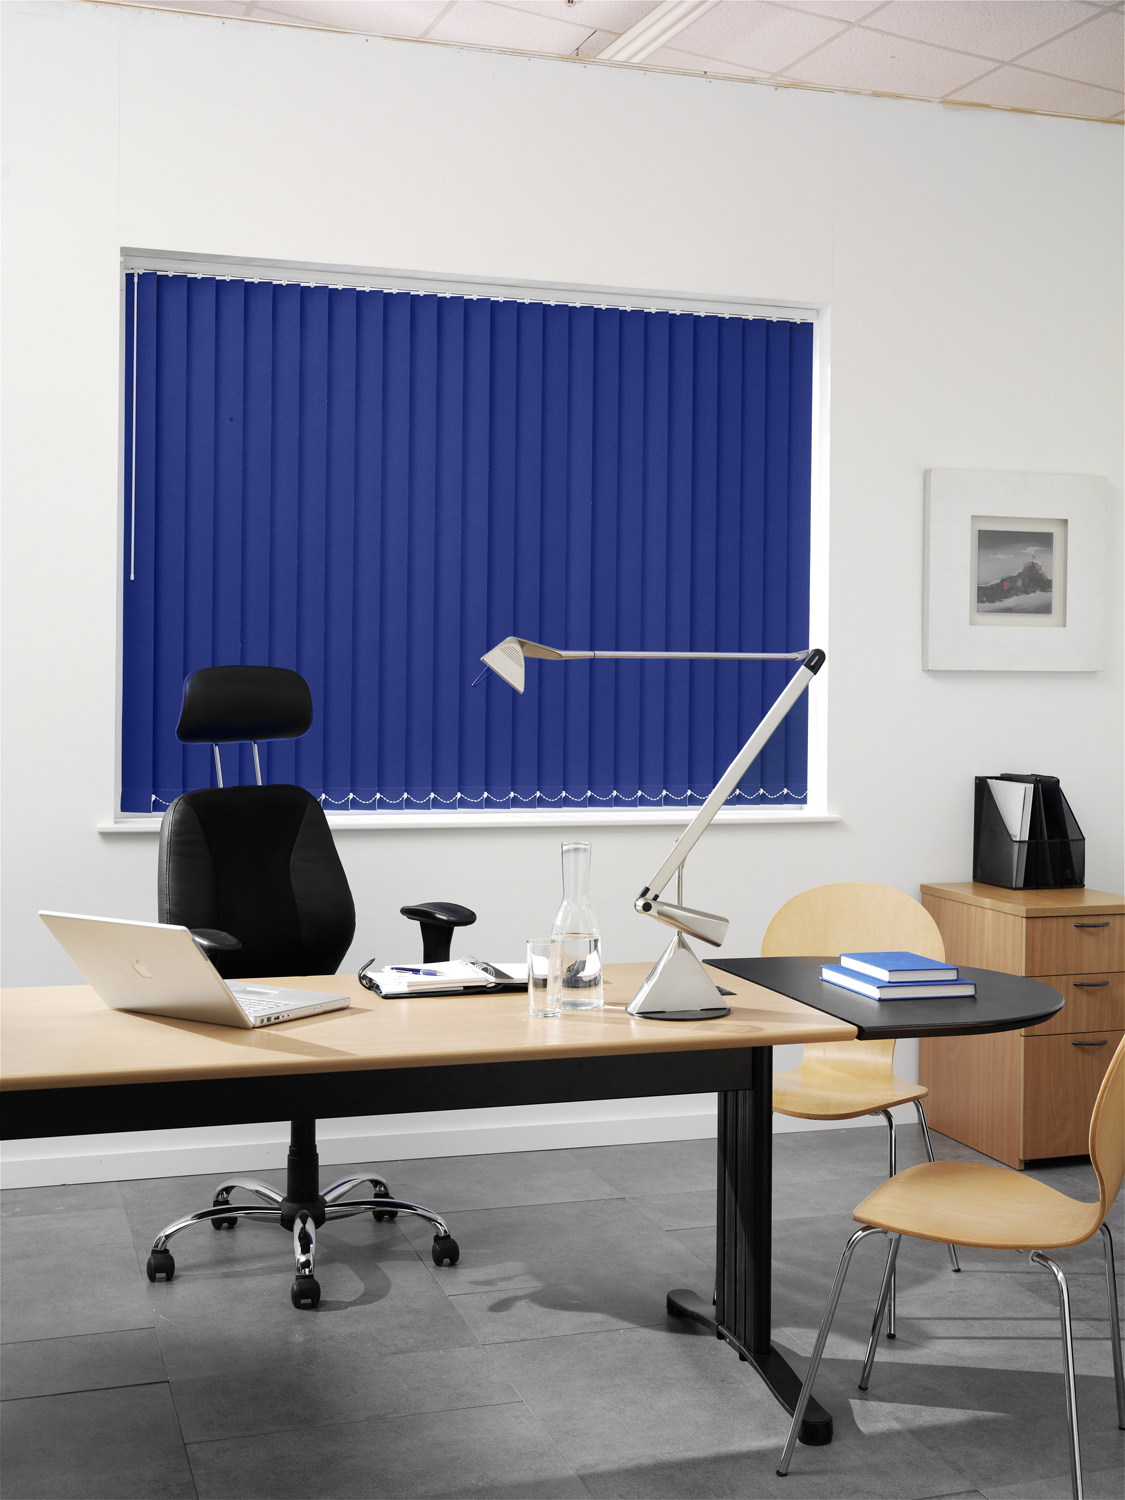 Vitra Imperial blind in an office